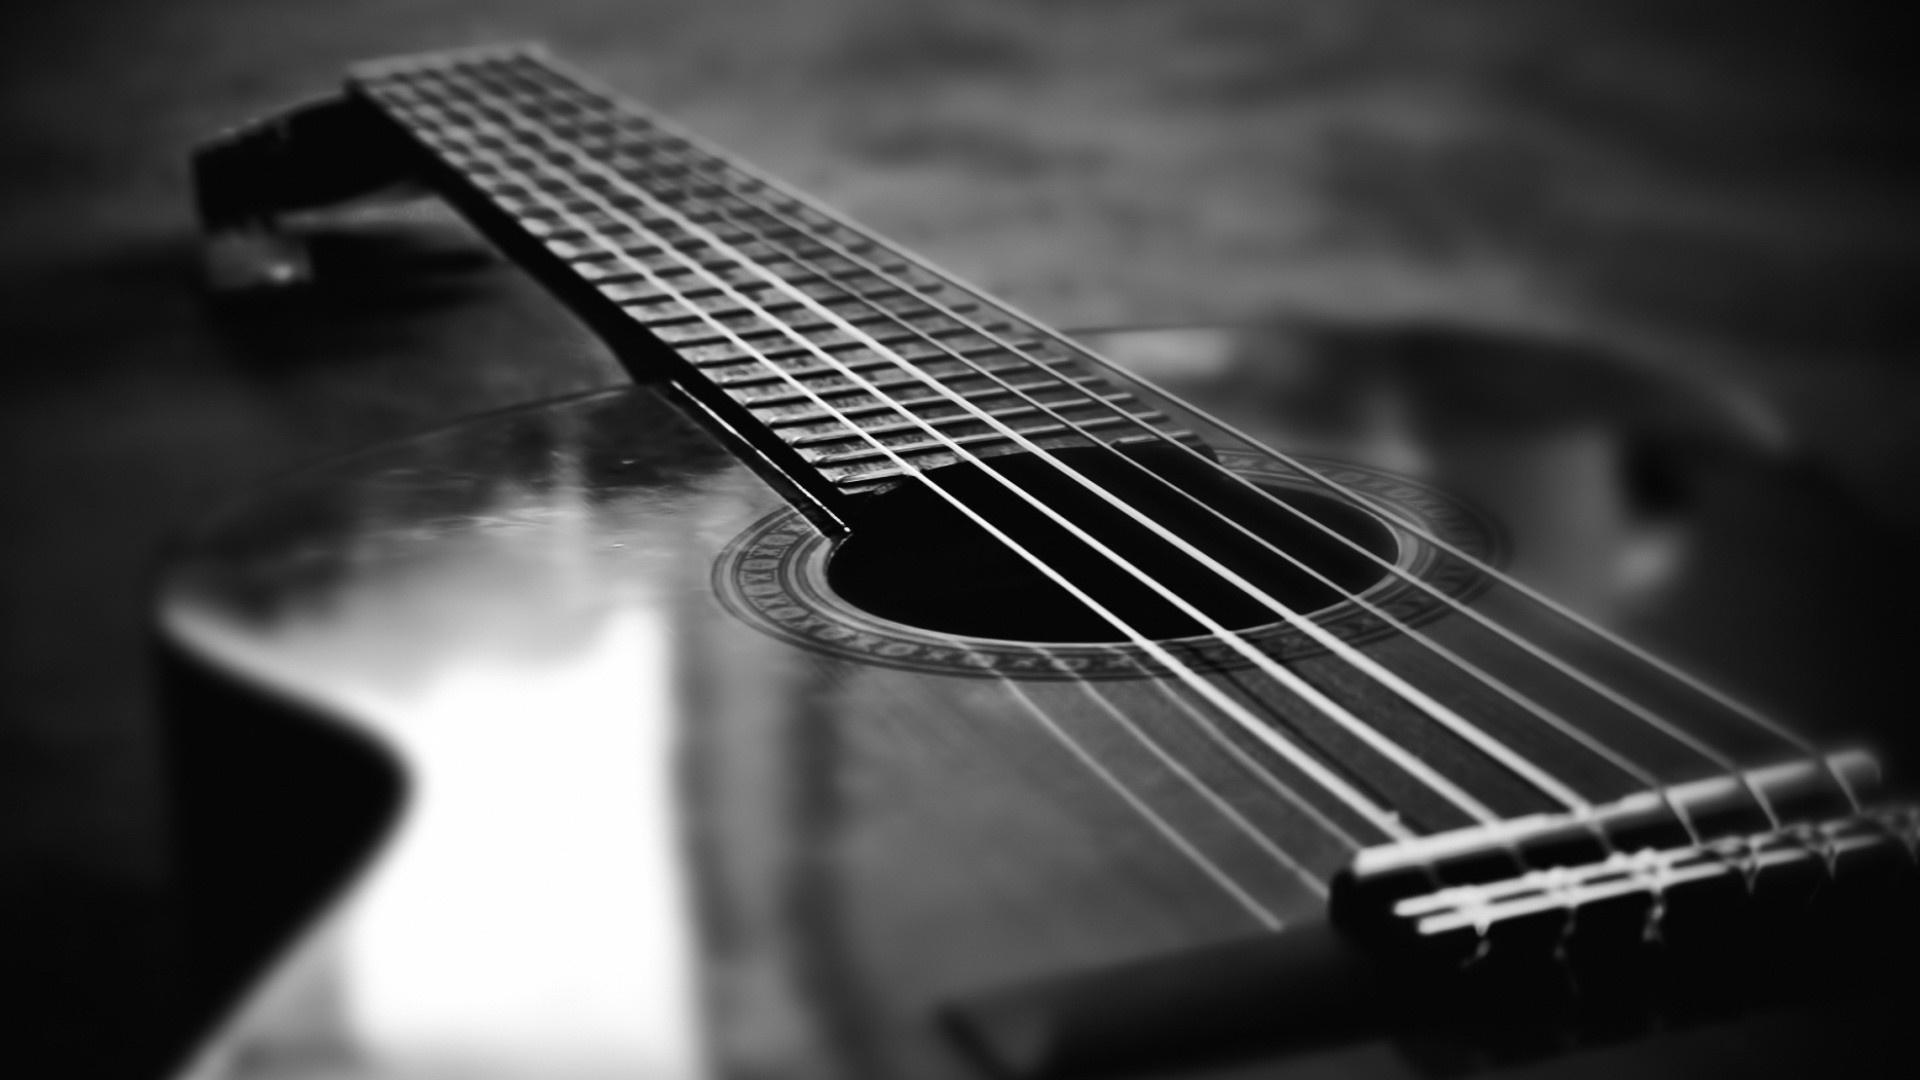 Acoustic Guitar Wallpapers 1080p - Wickedsa com